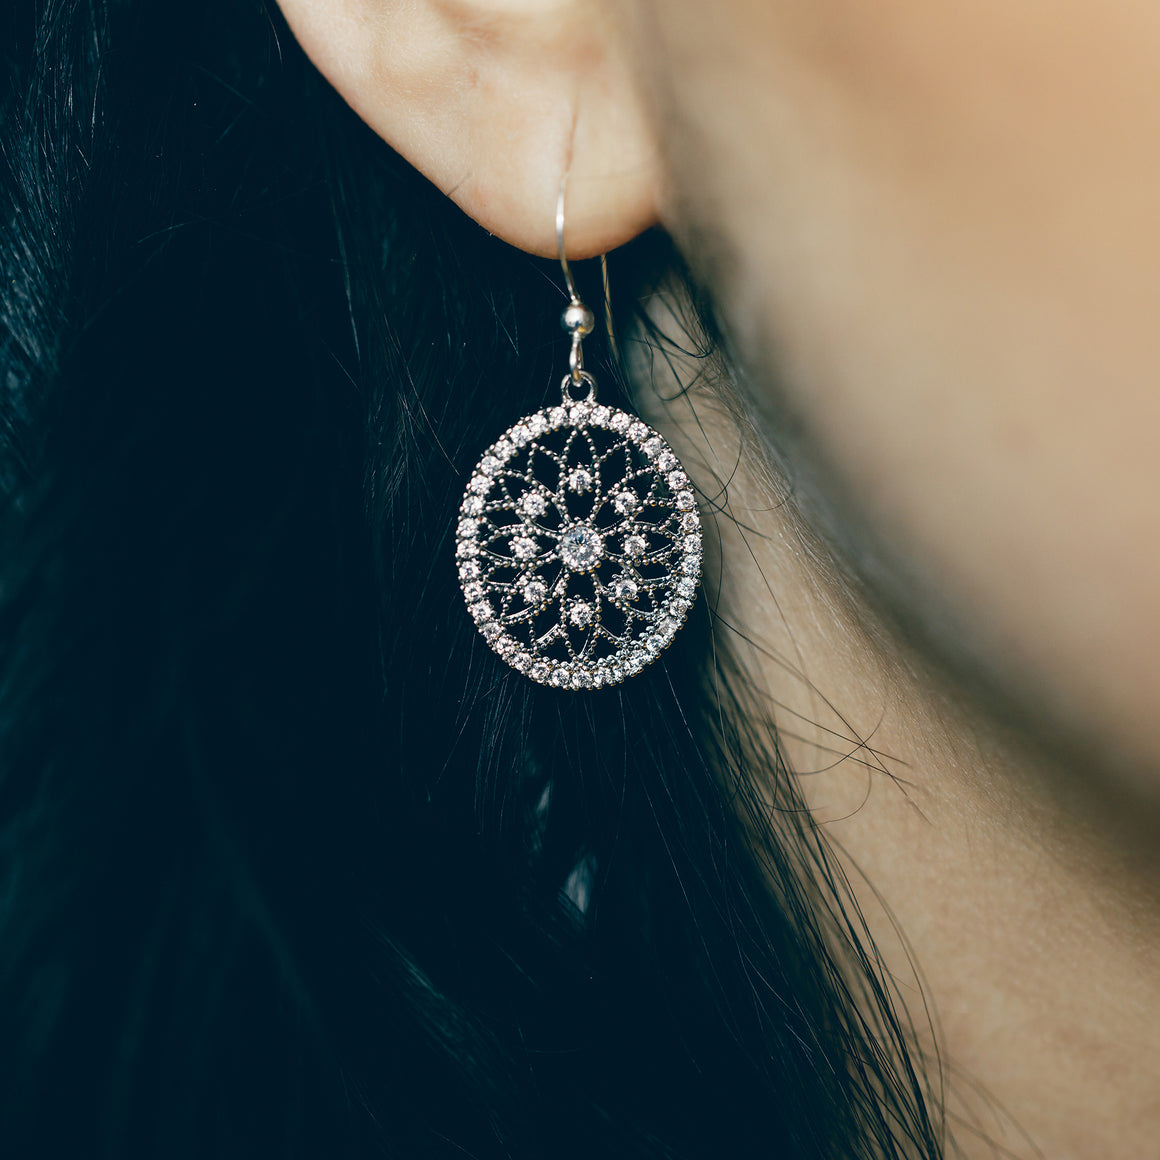 Vintage Inspired Silver Earrings